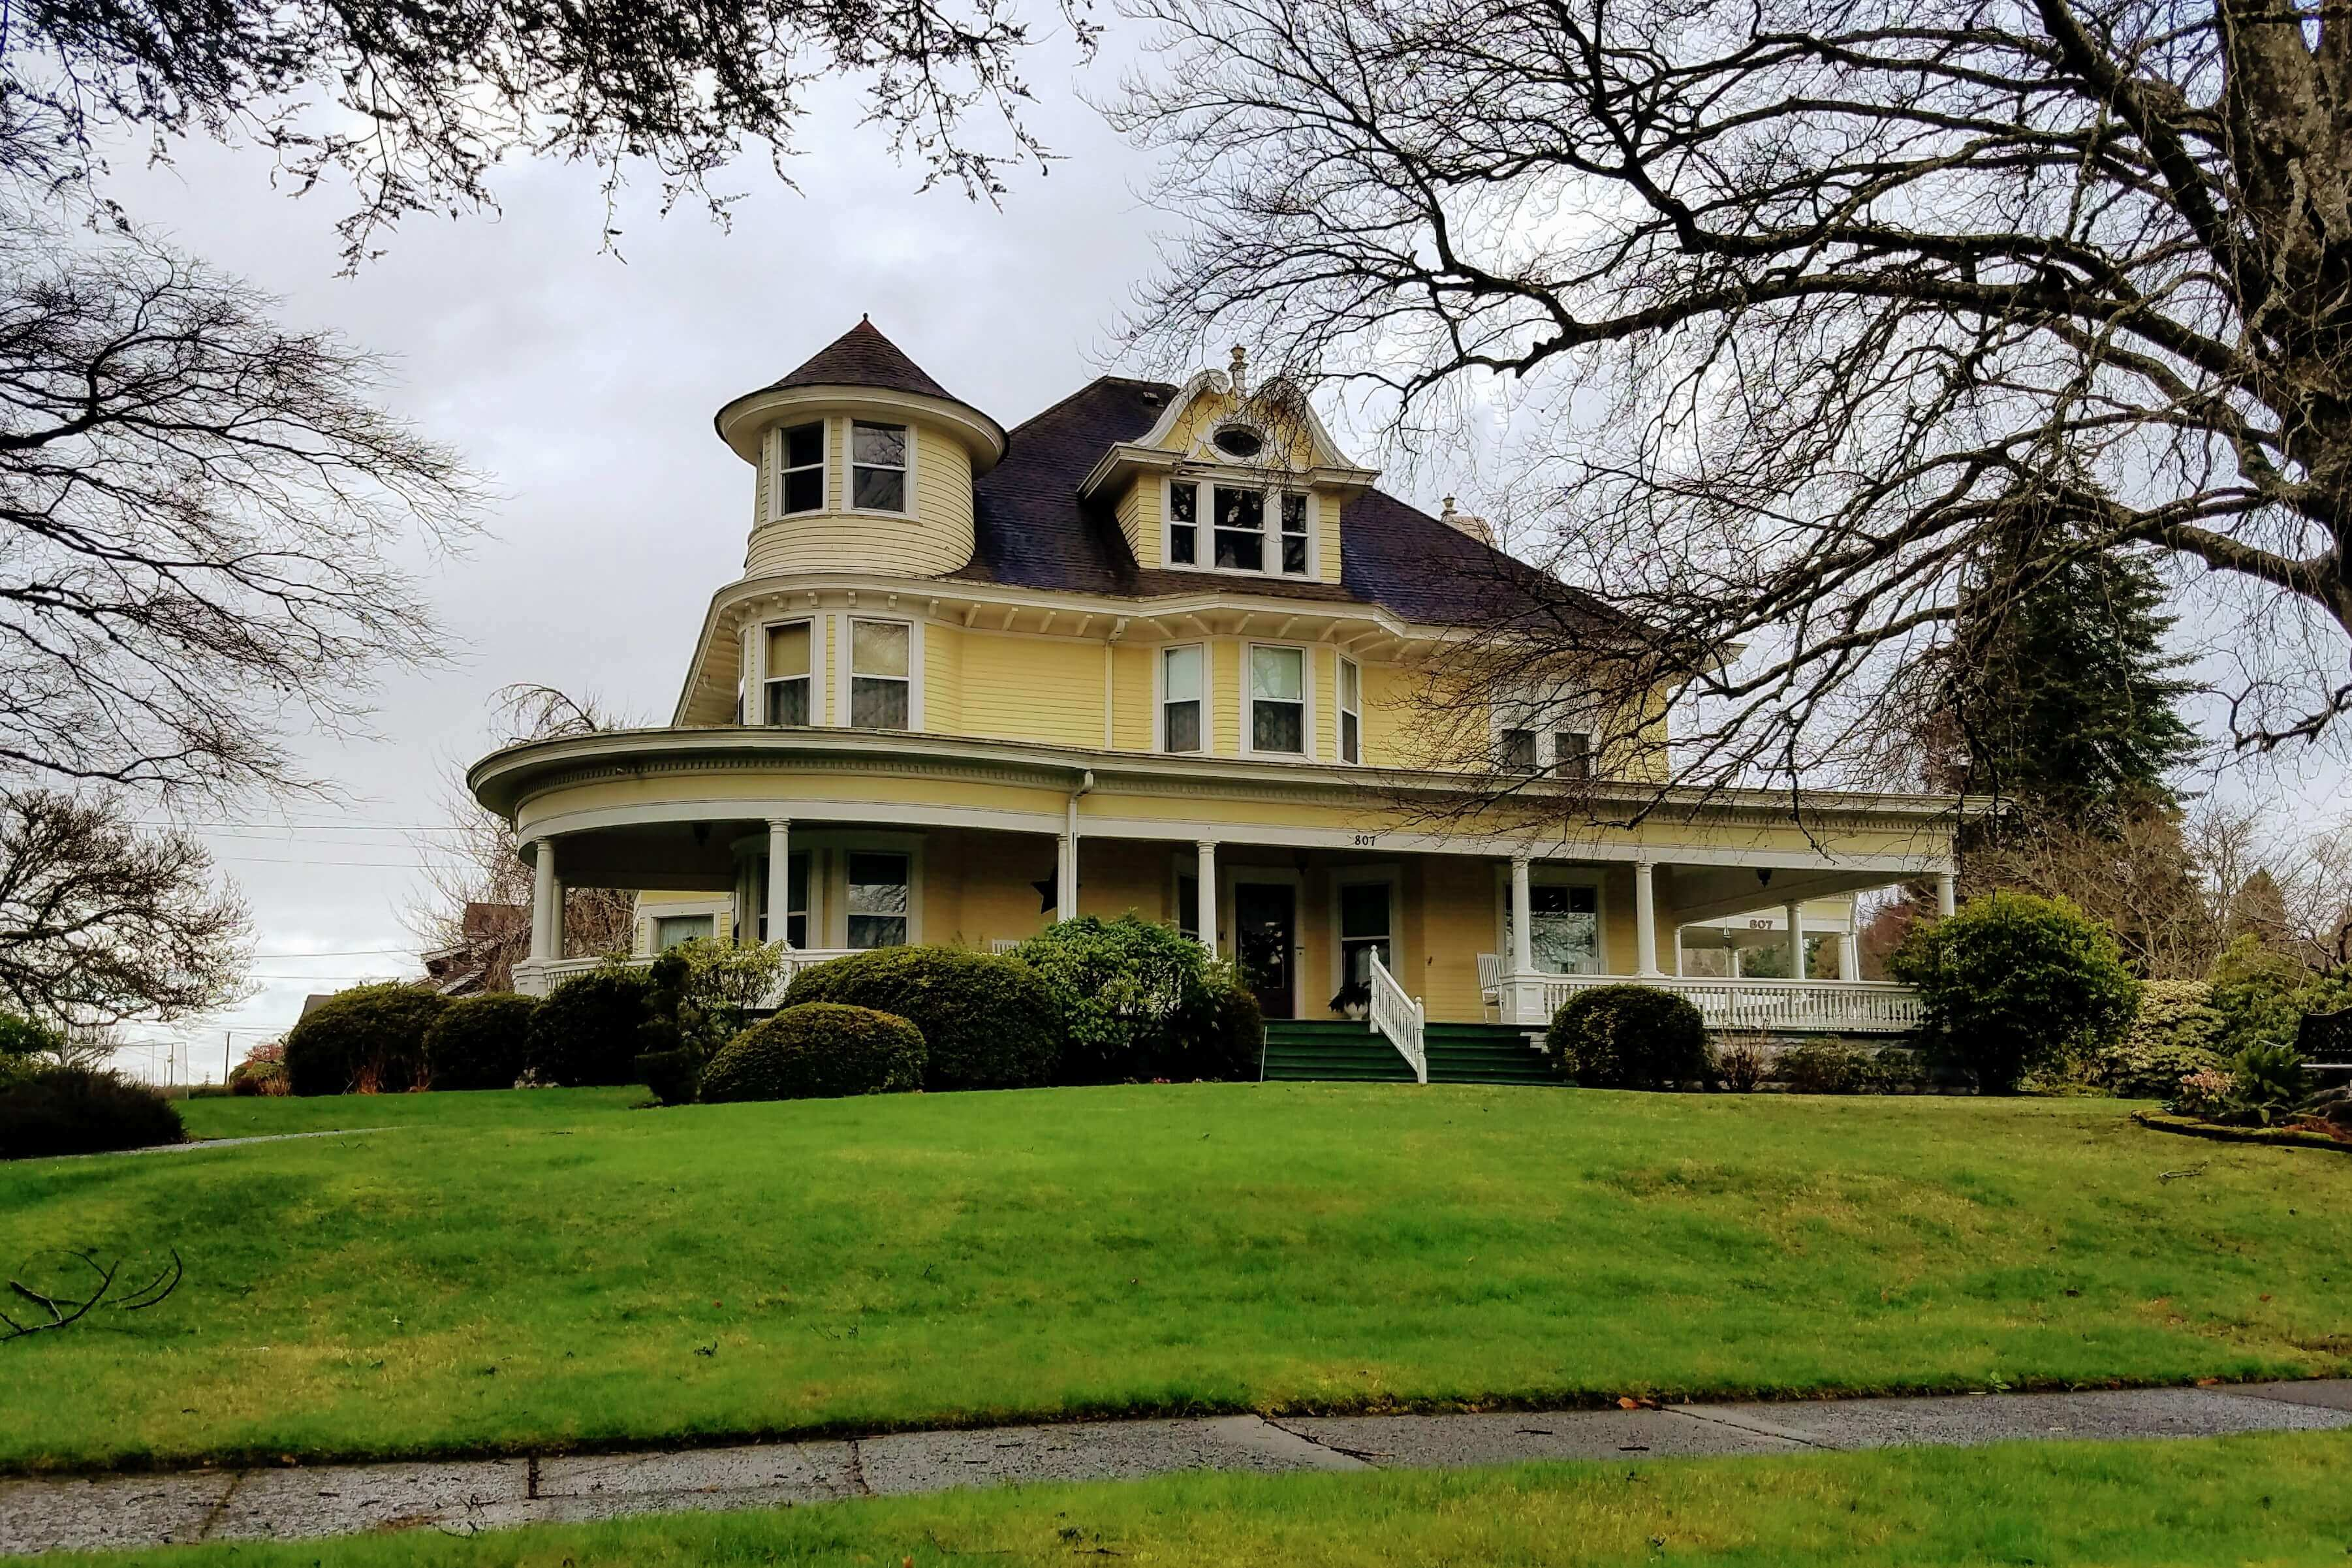 Grays Harbor Historic Homes Aberdeen Mansion Hulbert Historic Homes